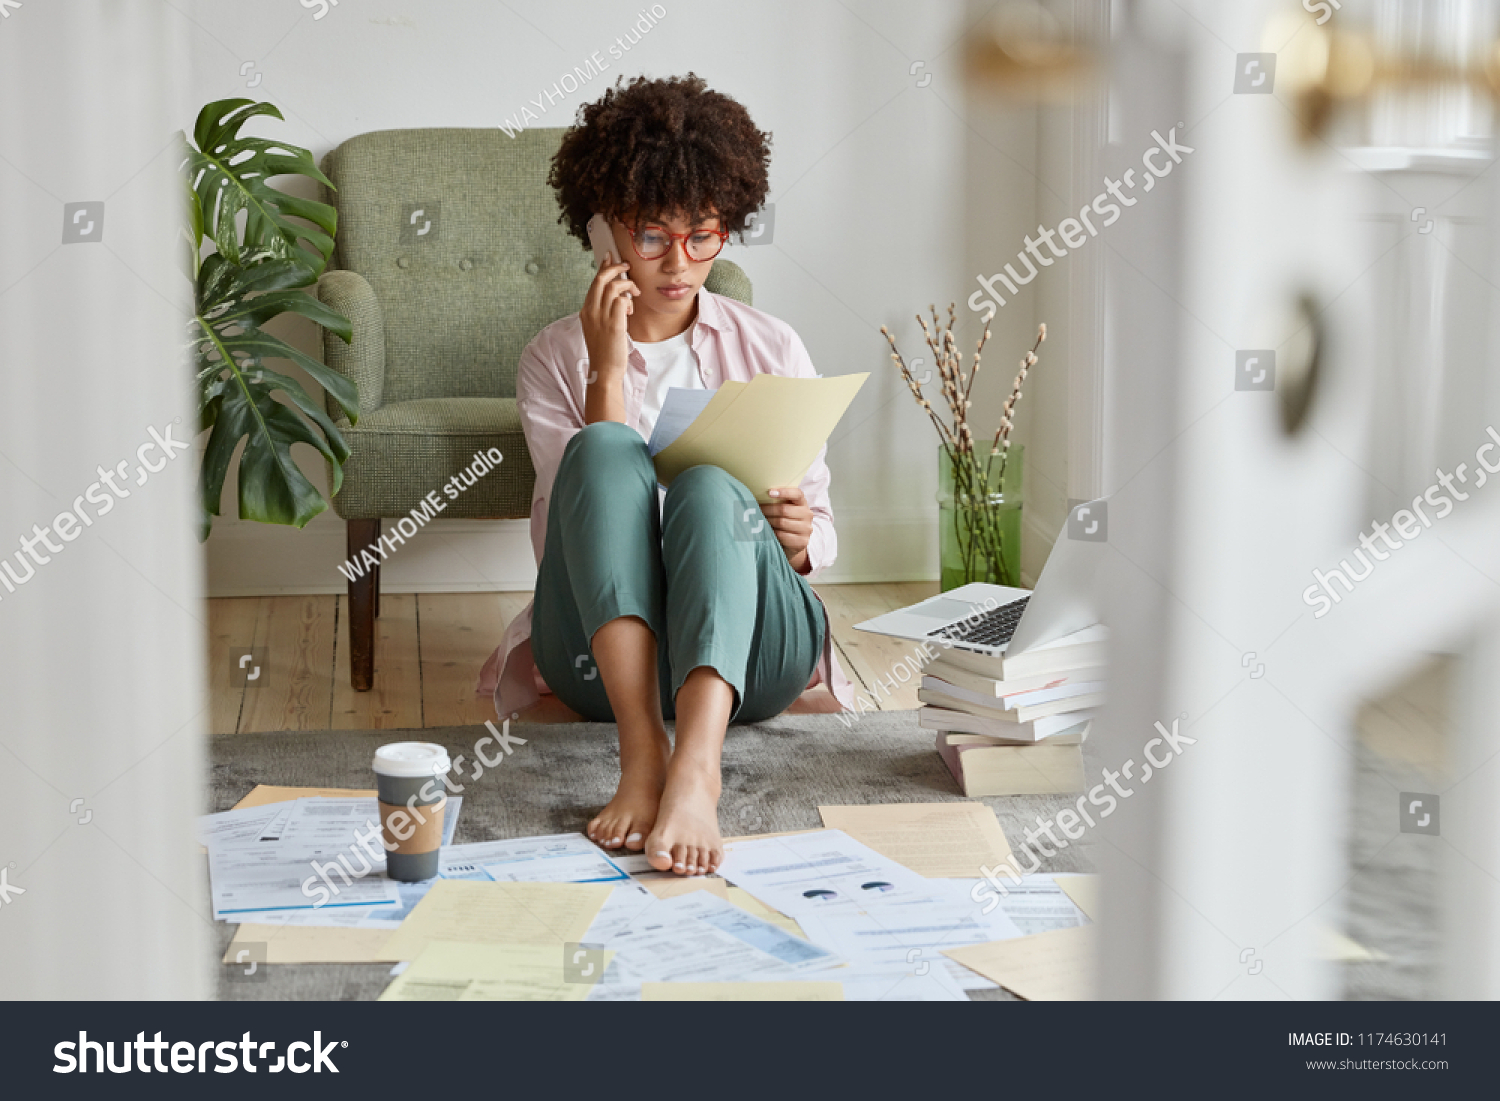 Busy Lady Afro Hairstyle Studies Attentively Stock Photo Edit Now